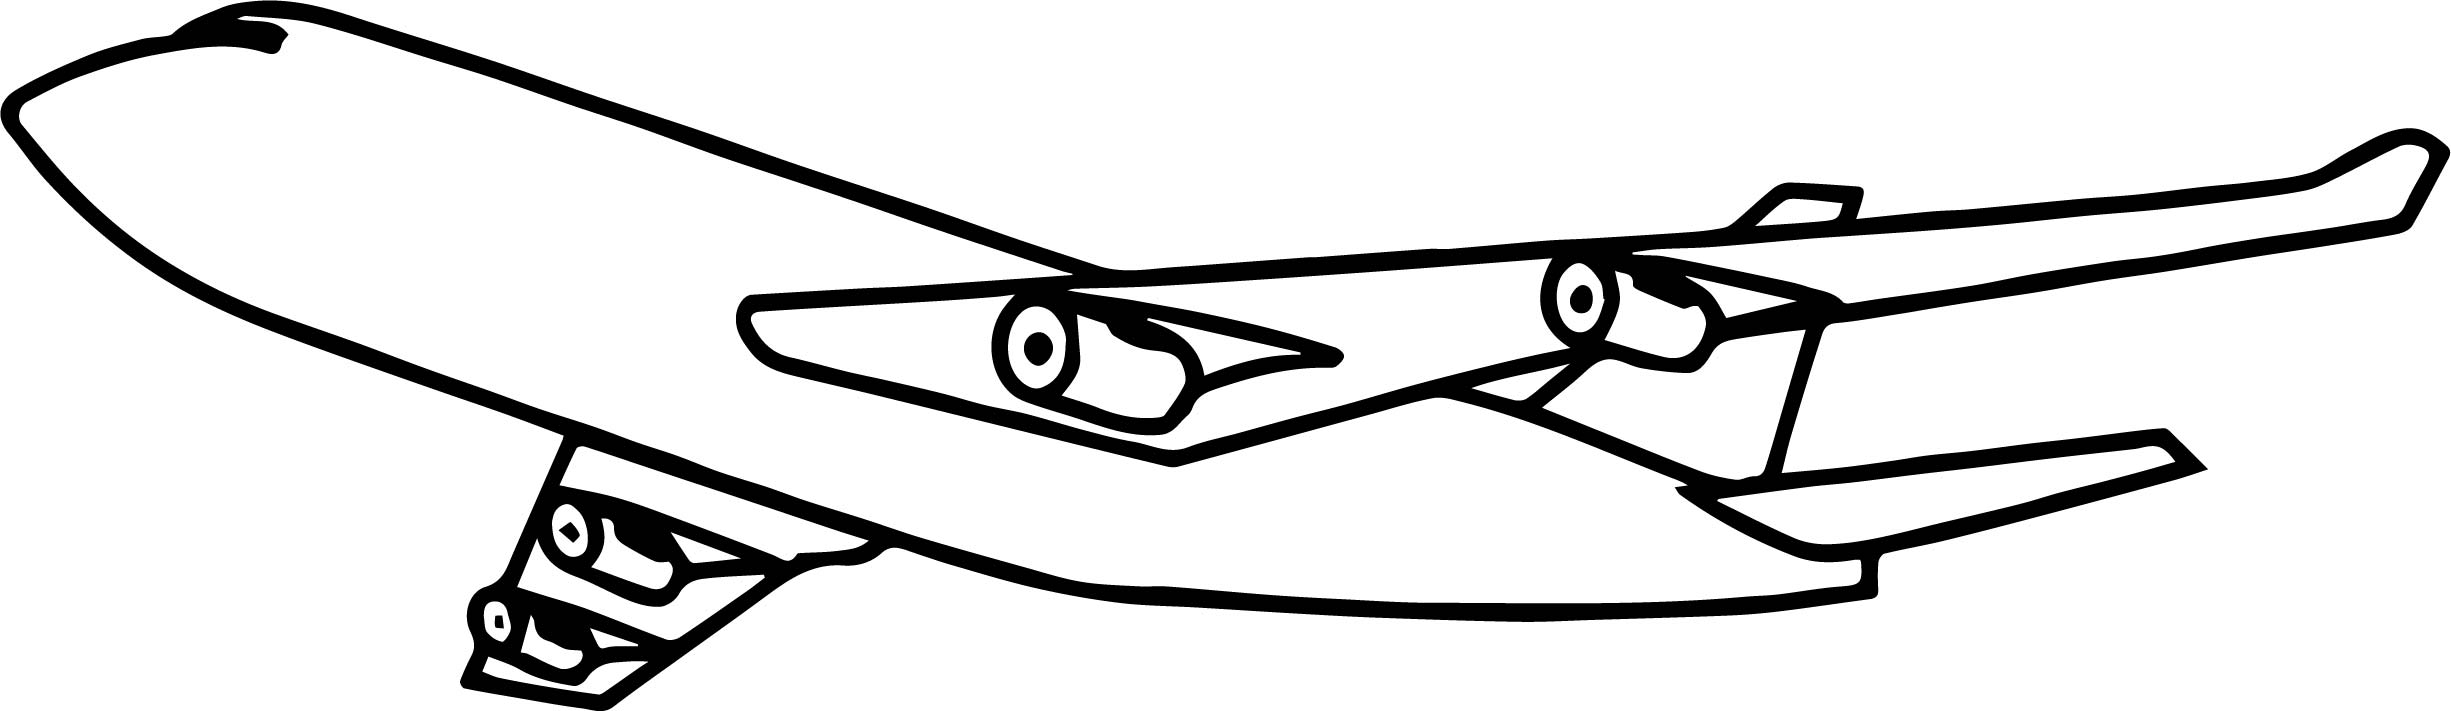 2451x711 Airplane Outline Coloring Page Wecoloringpage